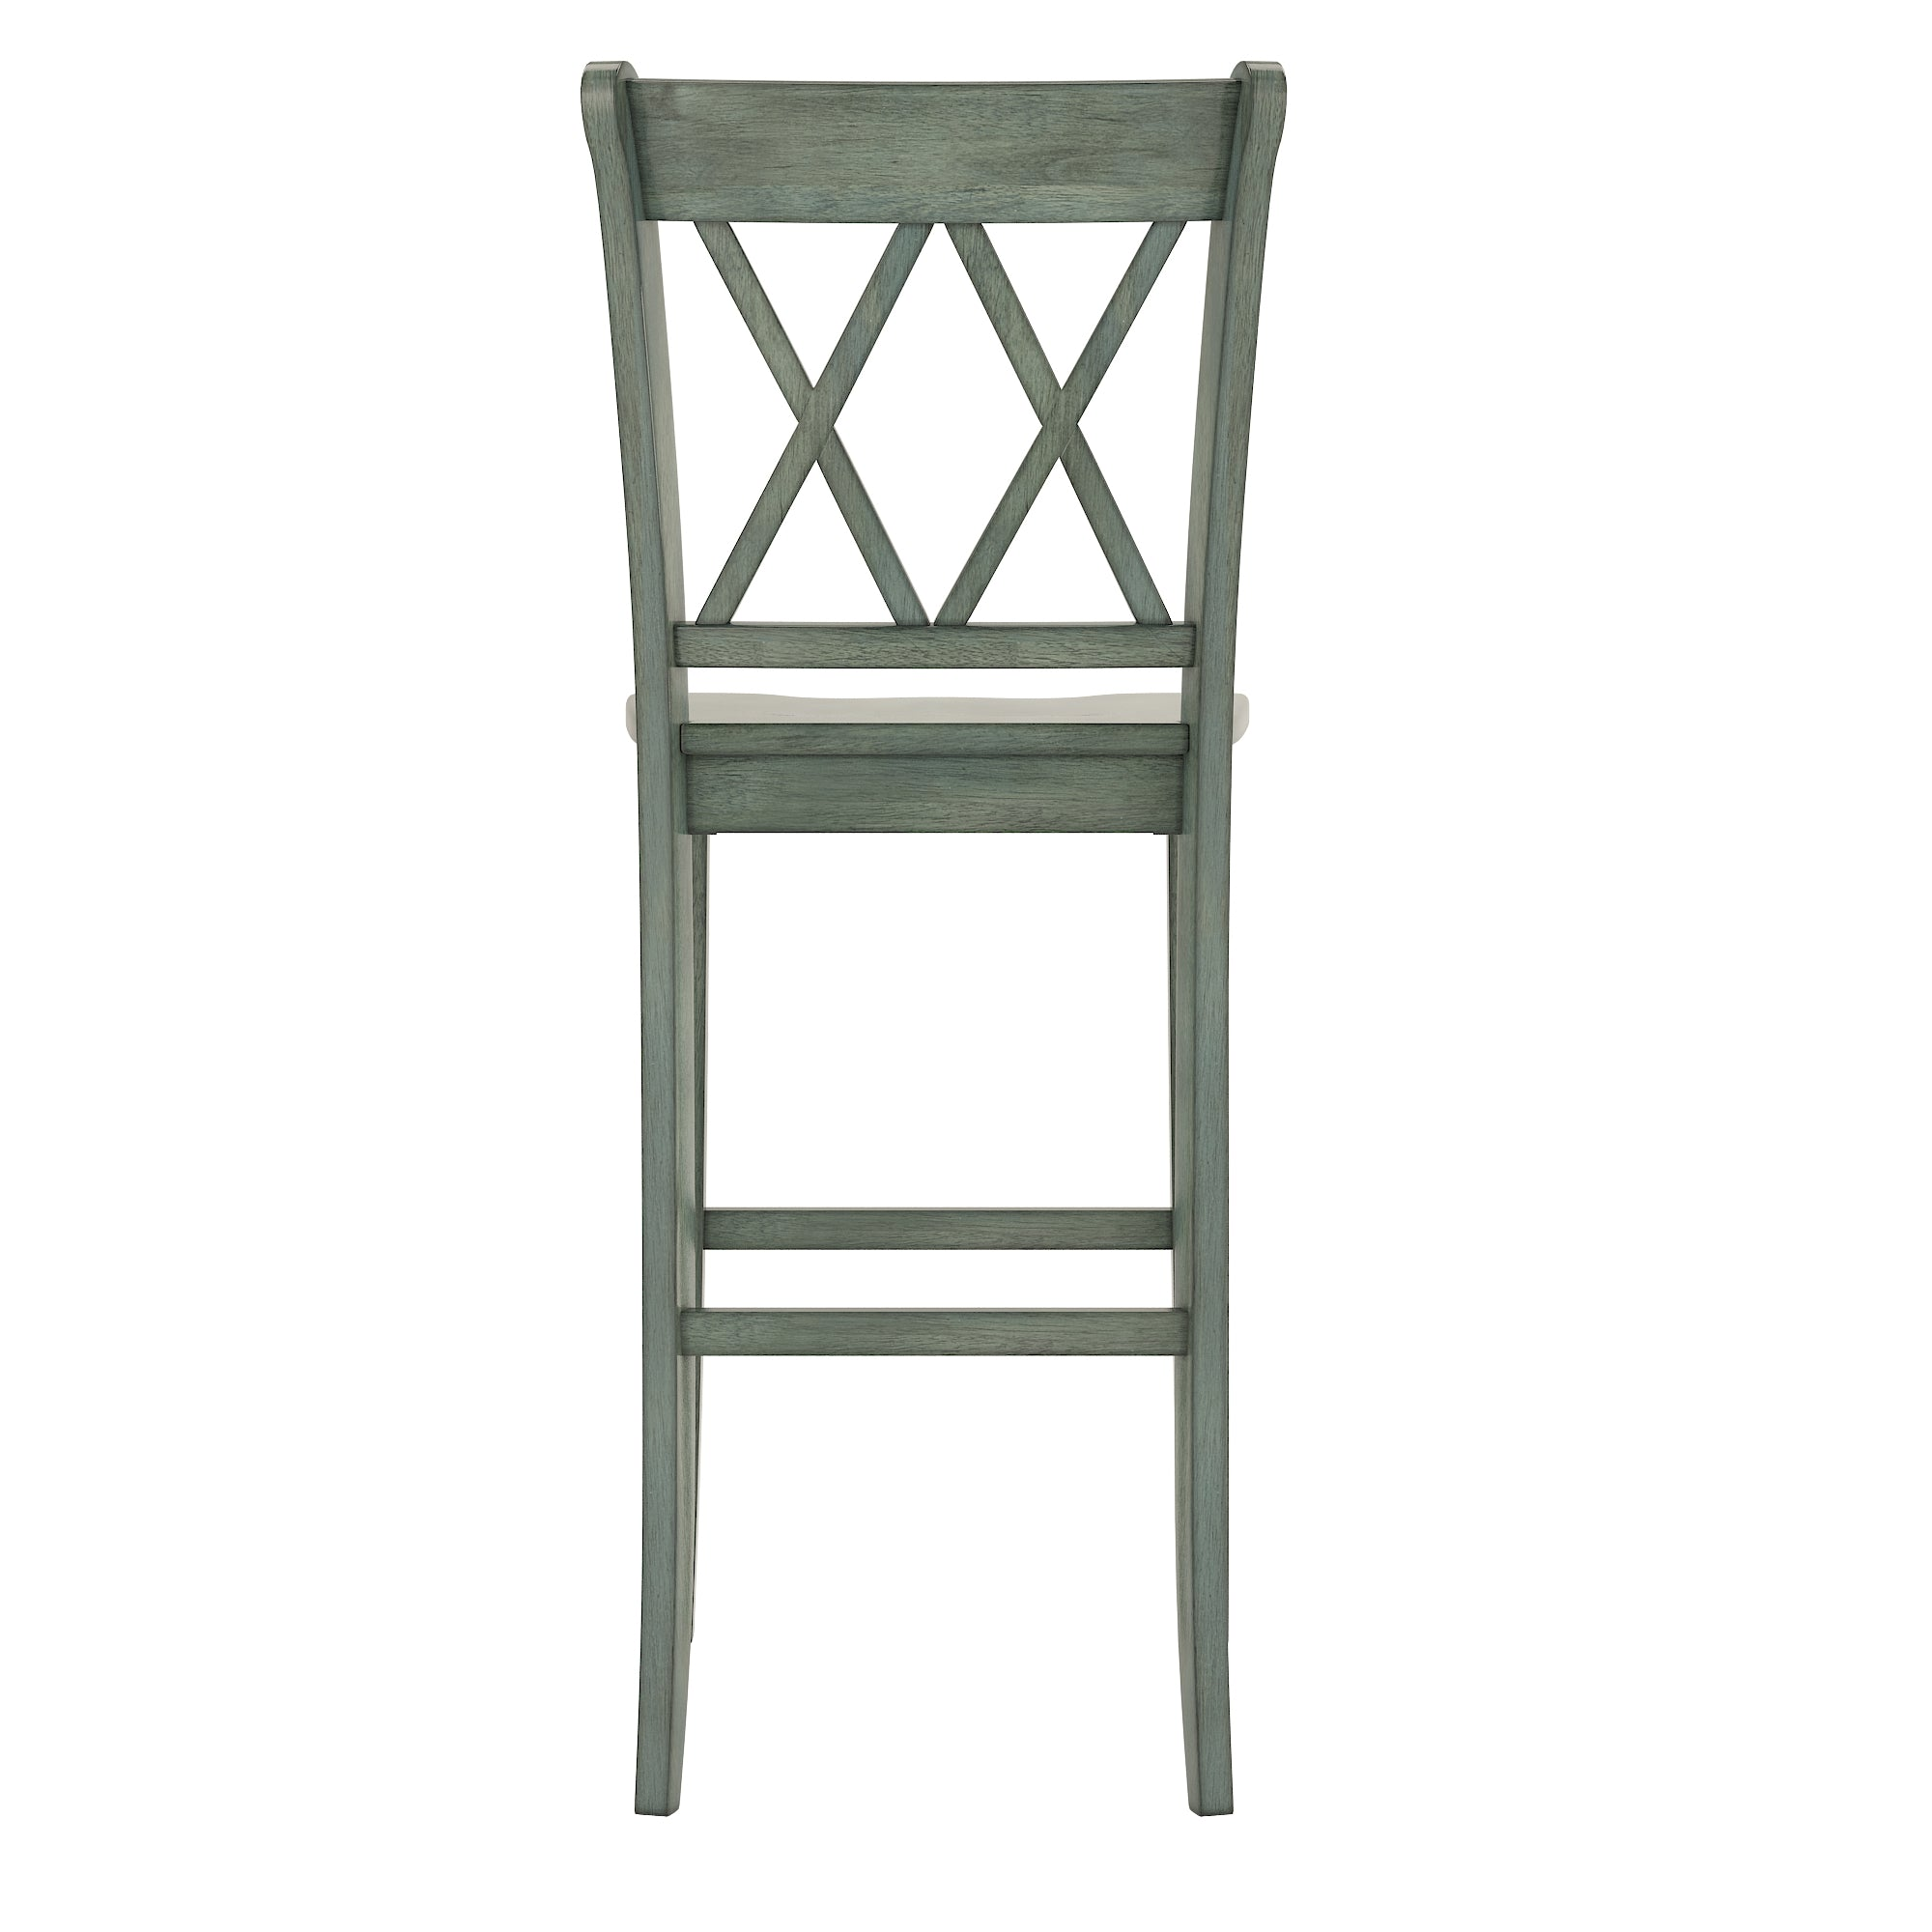 Double X Back Bar Height Chairs (Set of 2) - Antique Sage Finish